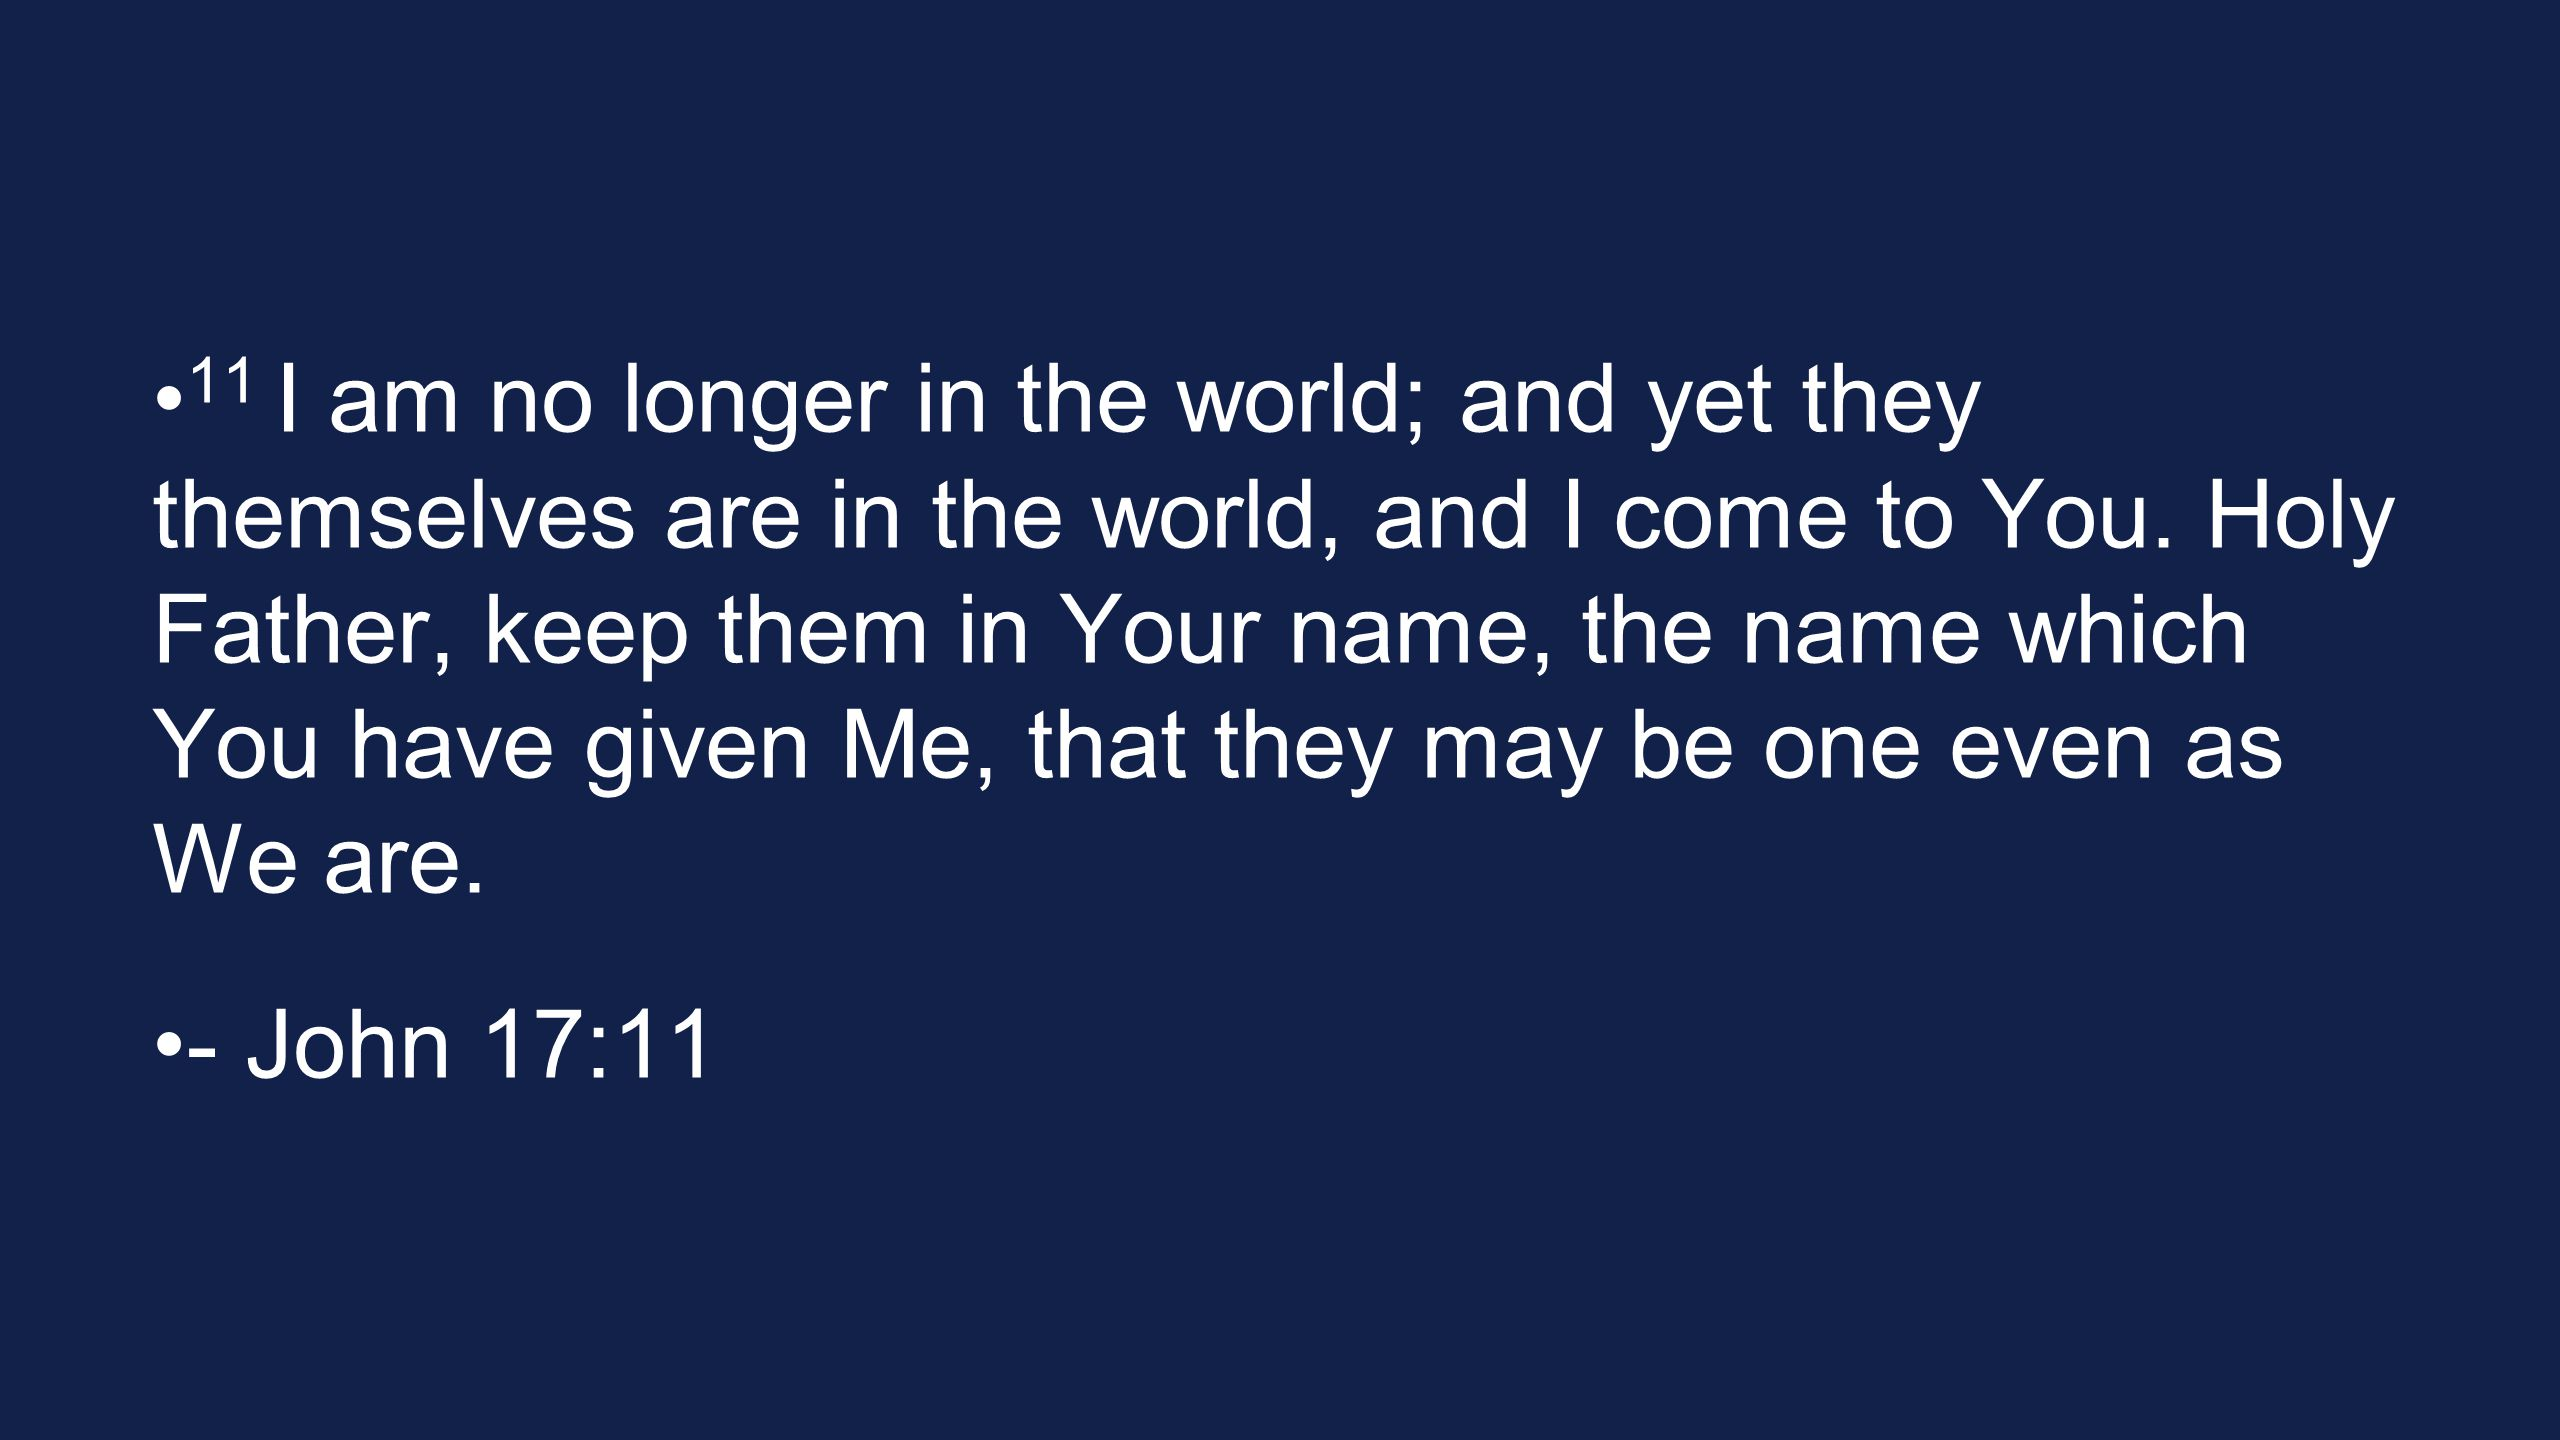 11 I am no longer in the world; and yet they themselves are in the world, and I come to You. Holy Father, keep them in Your name, the name which You have given Me, that they may be one even as We are.